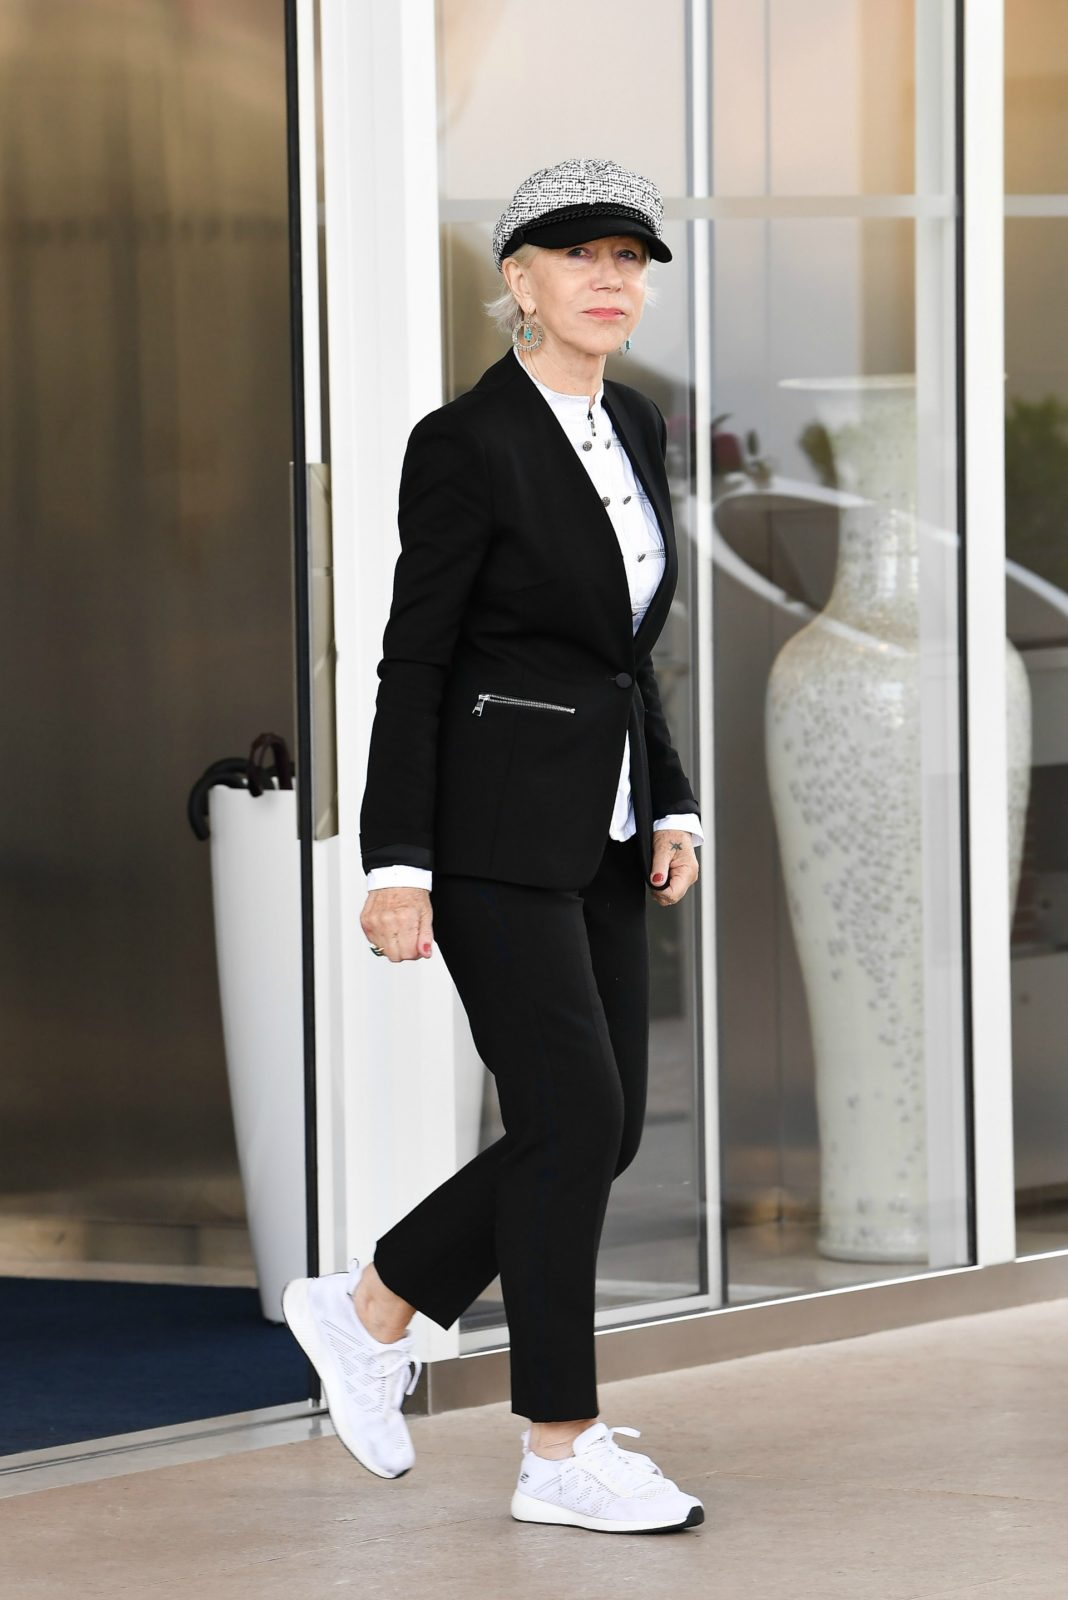 Helen Mirren looked stunning in a tailored black blazer and trousers. Source: Getty